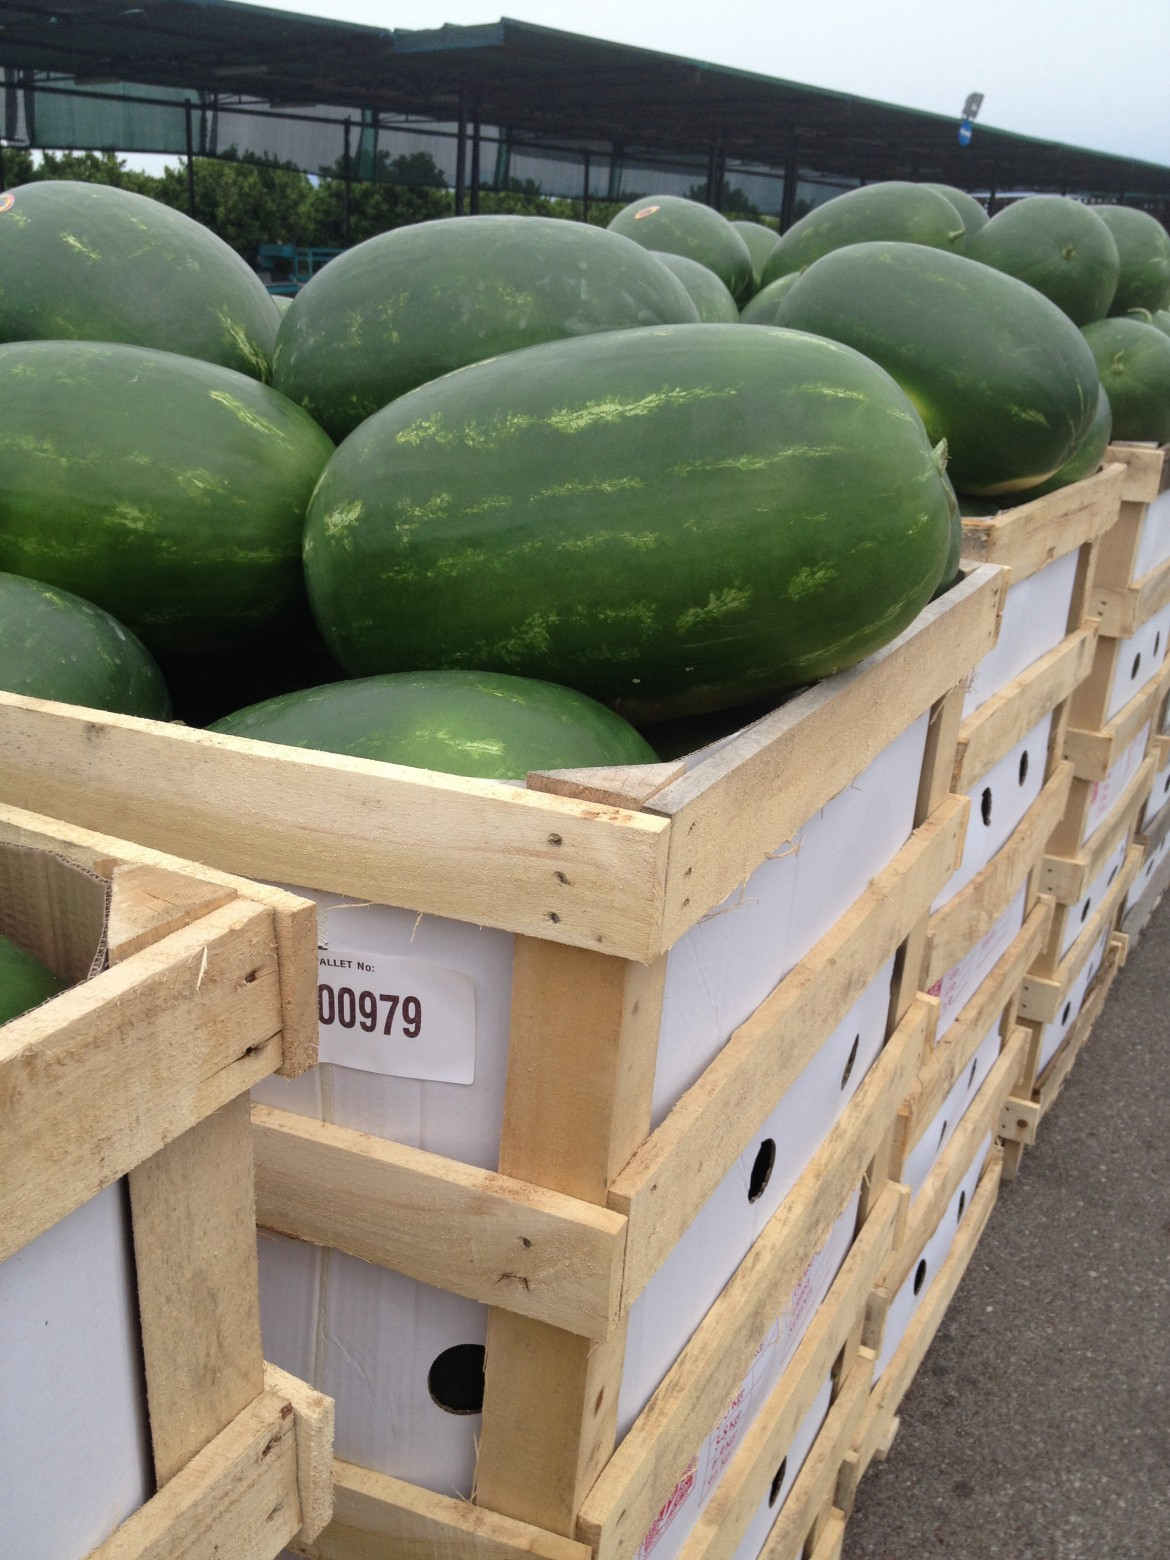 The watermelon's distribution of 2015 has already started! pics